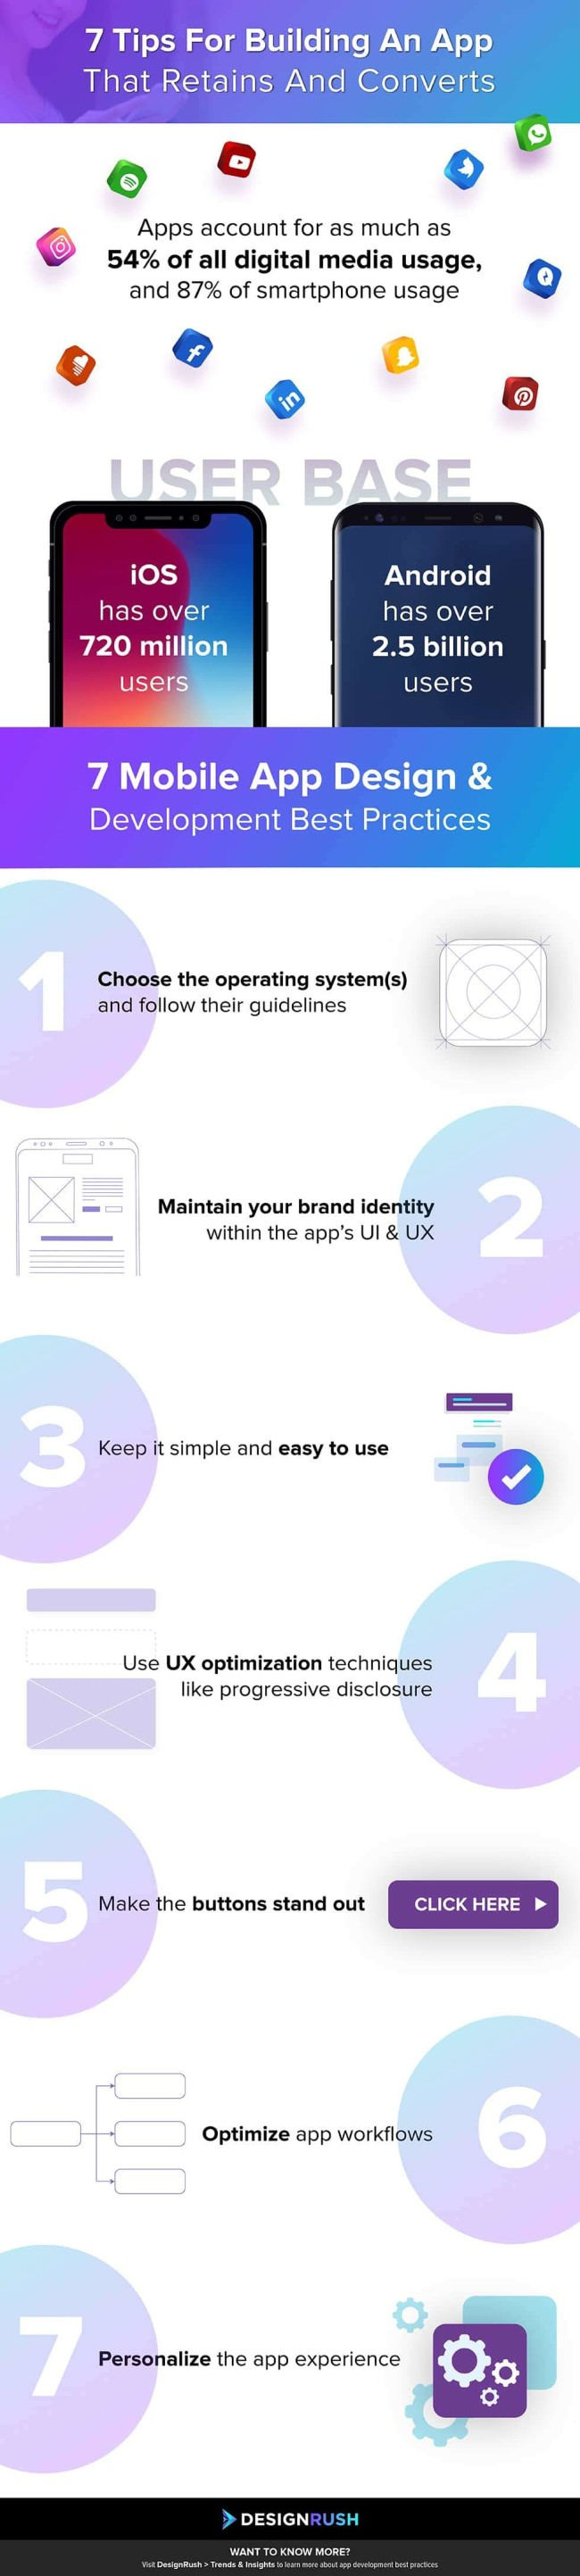 7 Tips To Build A Successful Mobile App - Infographic